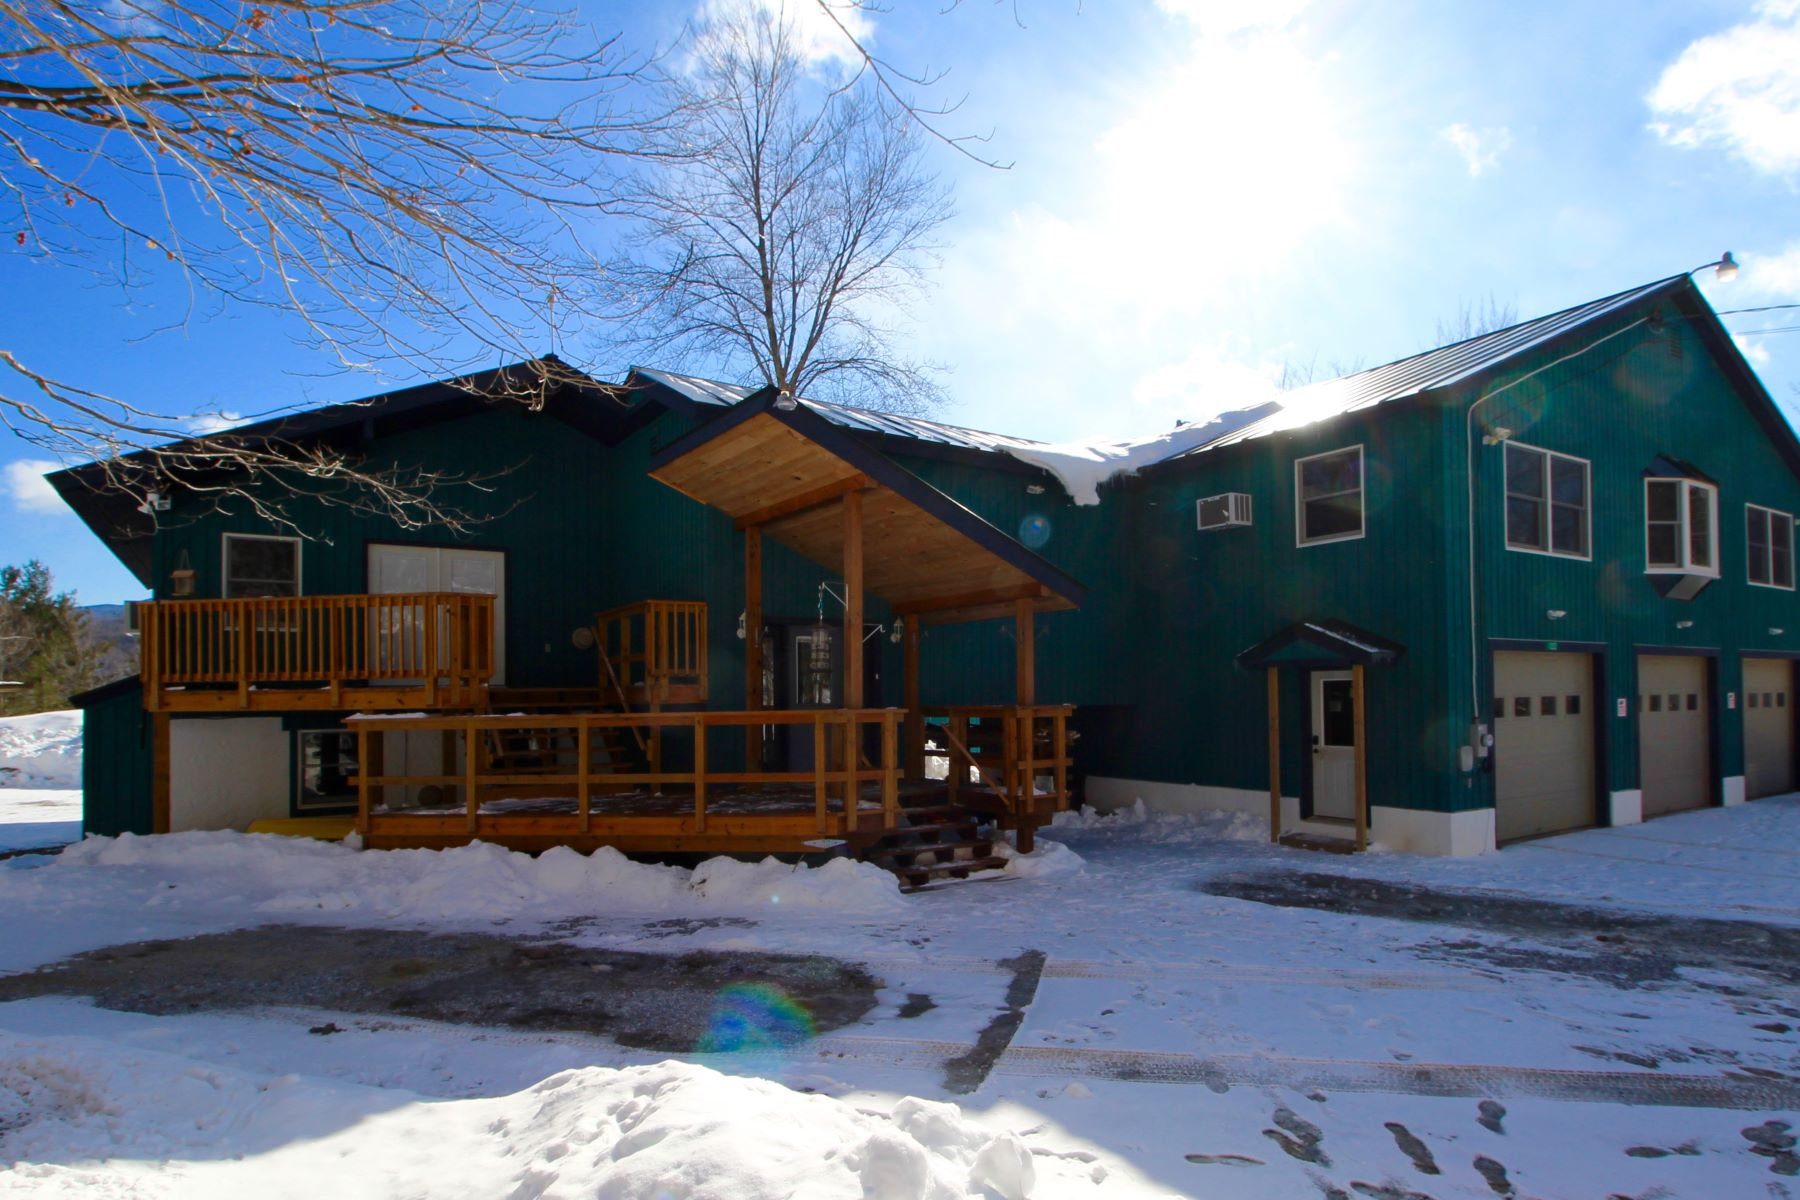 Single Family Home for Sale at 122 Winding, Killington Killington, Vermont, 05751 United States